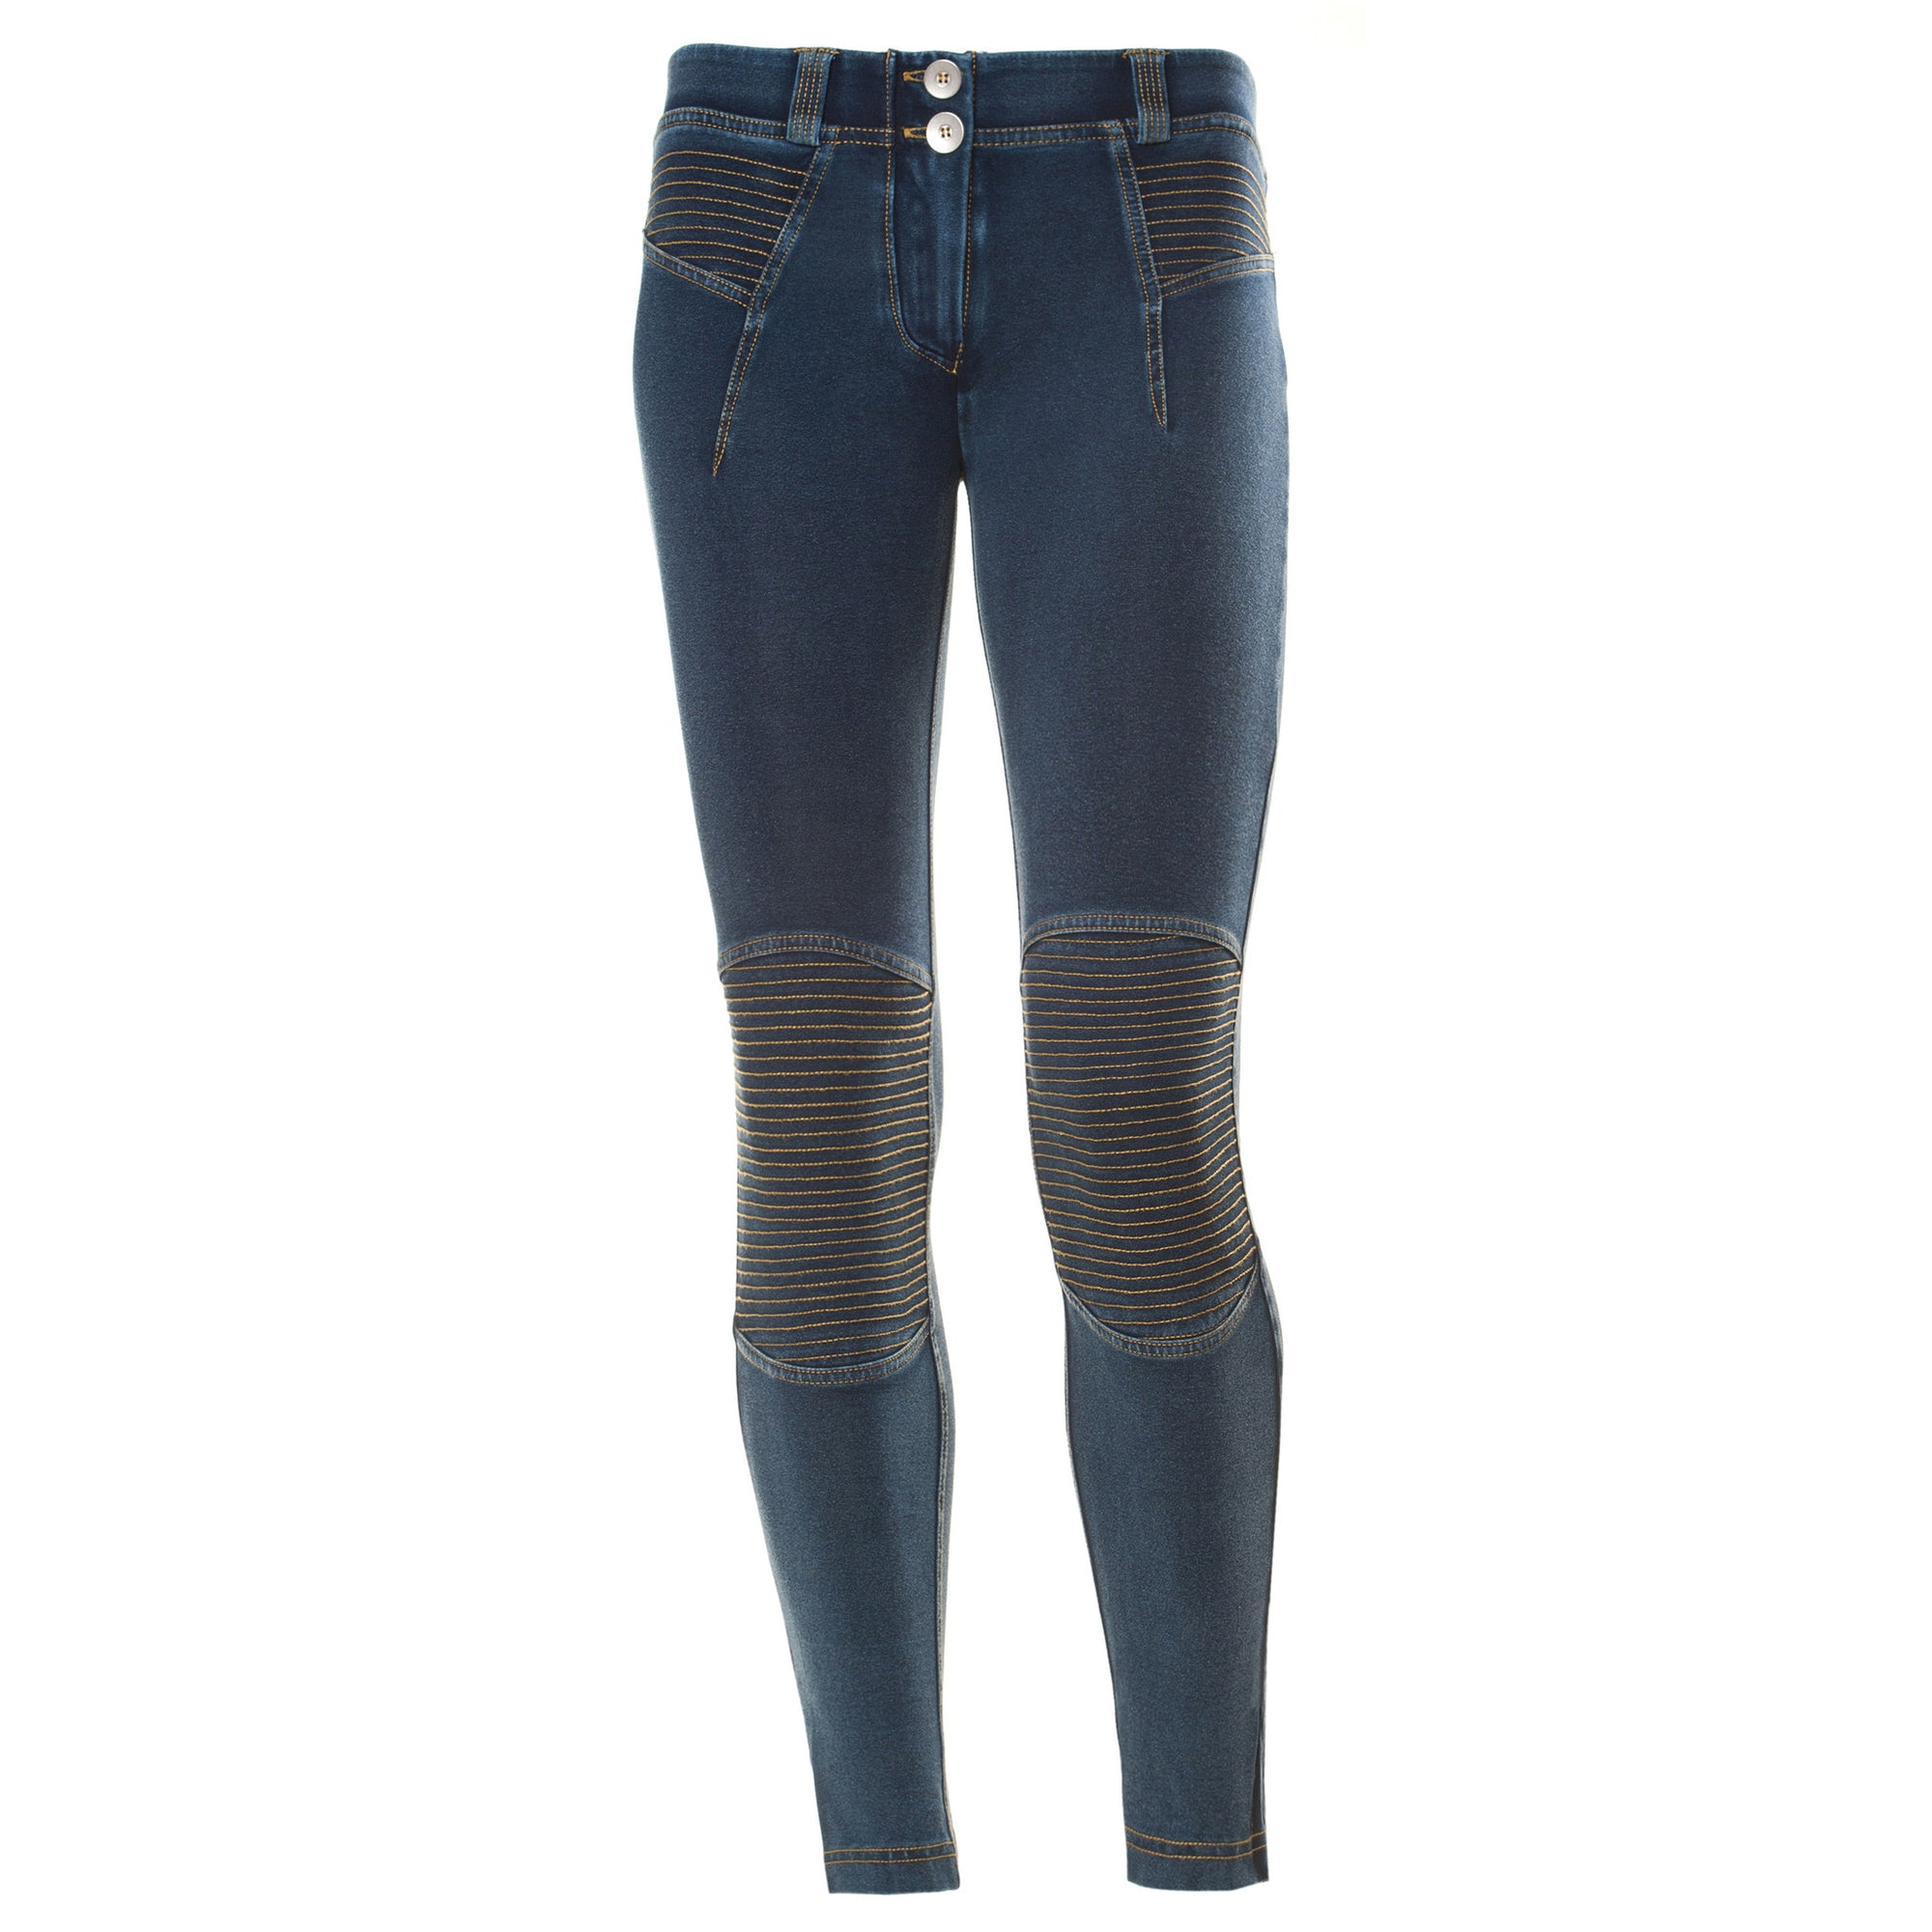 ea96d6014a5 FREDDY WR.UP MOTORCYCLE ZIP ANKLE LENGTH - Denim Effect - LIVIFY - 2